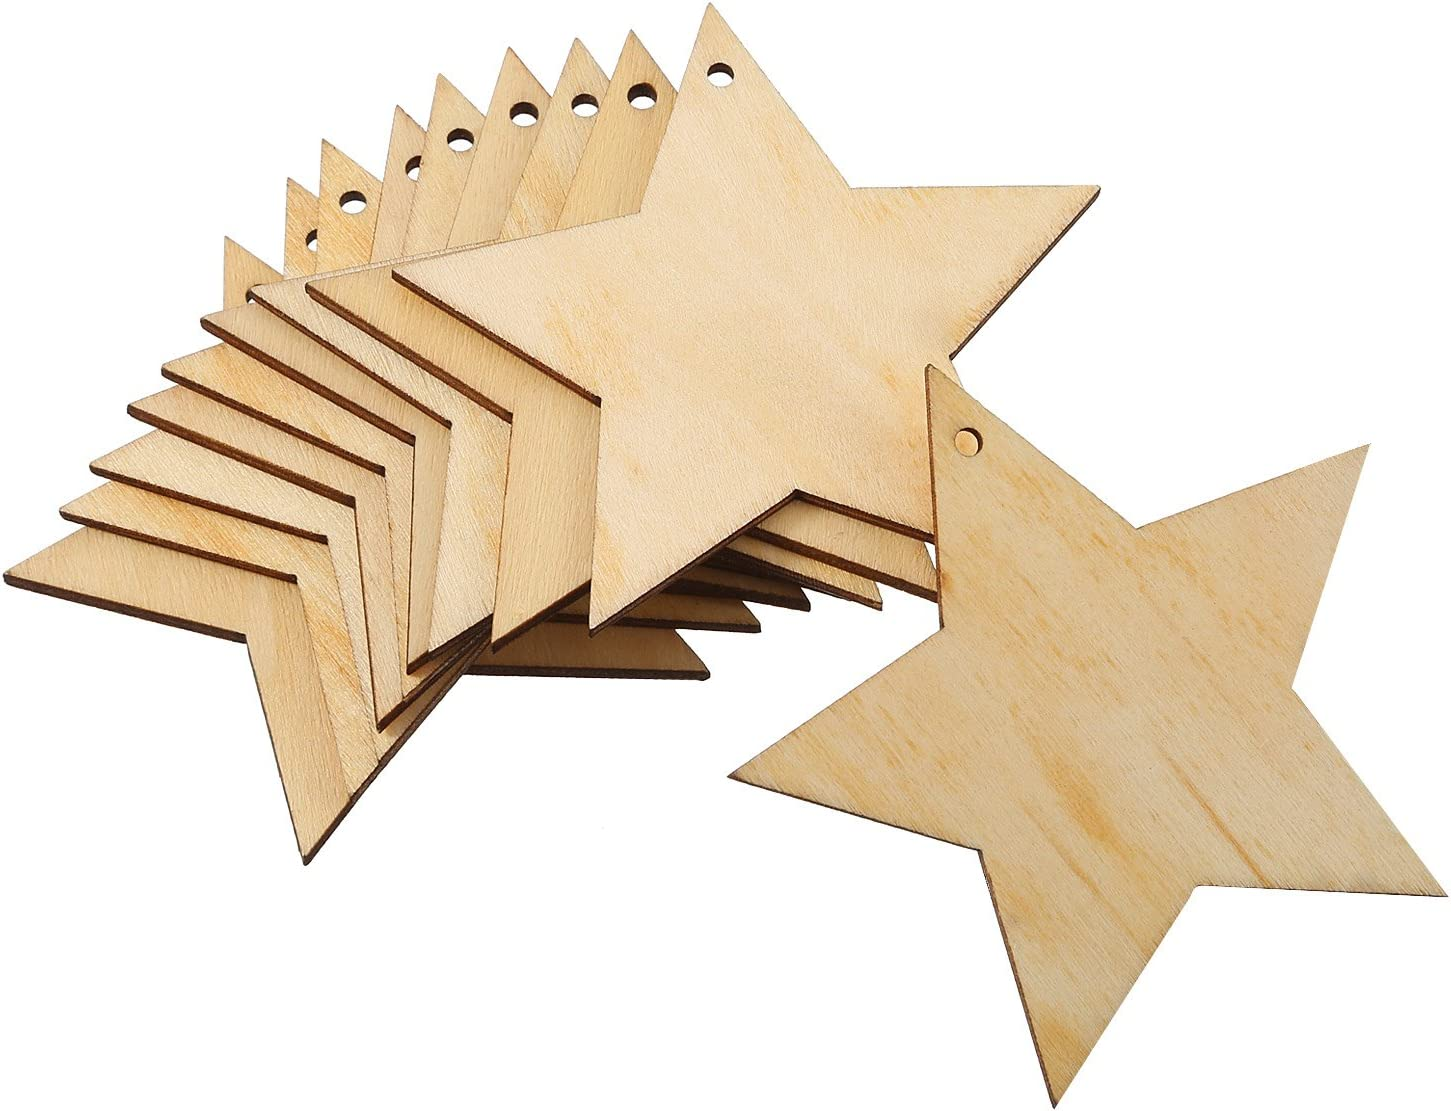 Embellishments Pangda 20 Packs Wooden Star Cutouts Hanging Ornaments with 20 Packs Strings for Wedding Festival DIY Craft Decoration